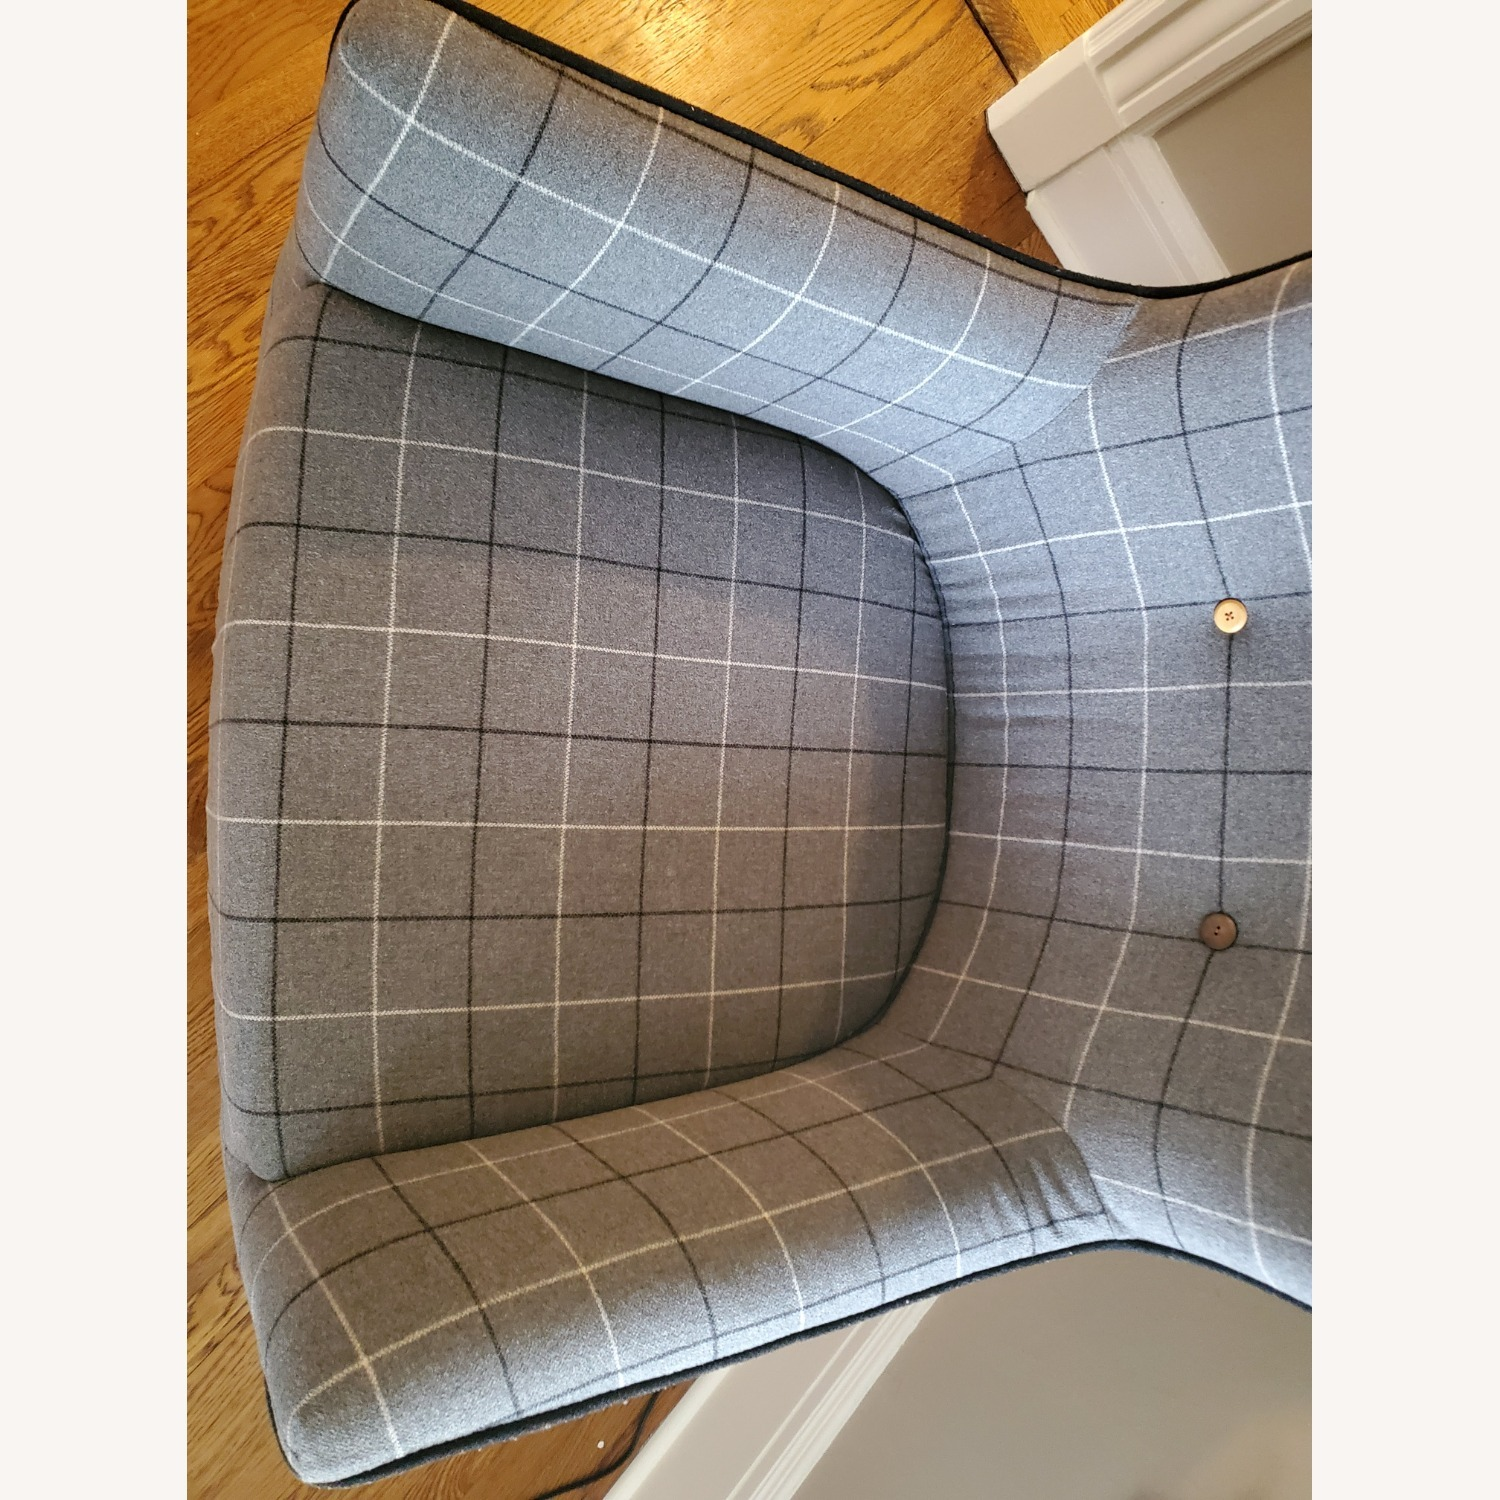 West Elm Victor Wingback Chair in Grey Plaid - image-10